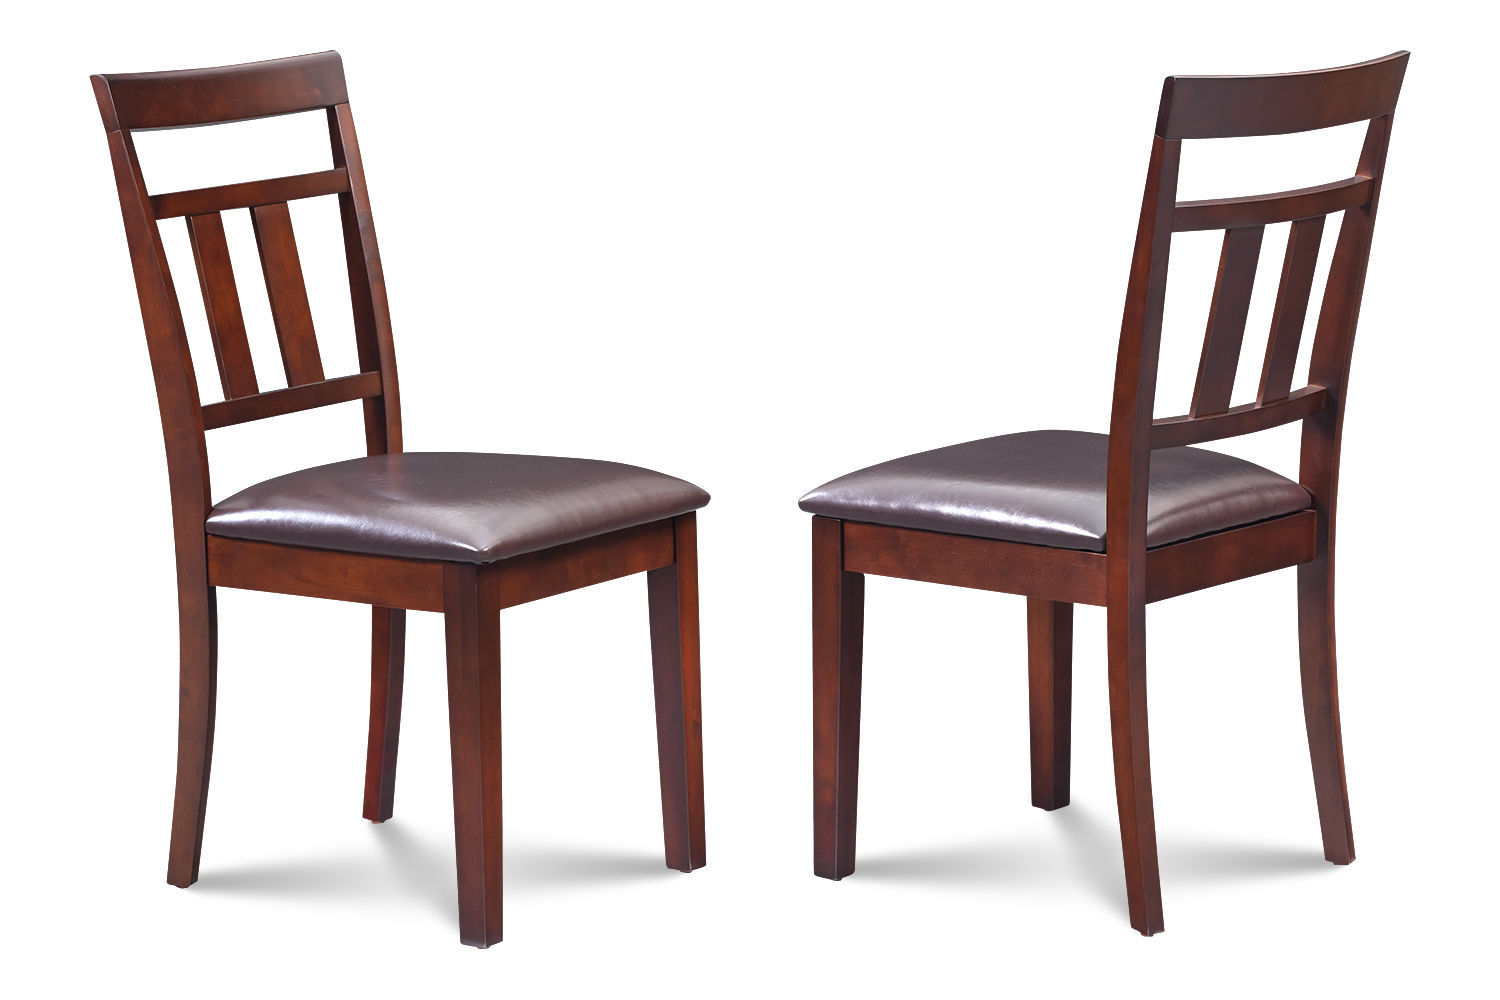 SET OF 6 KITCHEN DINING SIDE CHAIRS w/ FAUX SEATS IN MAHOGANY FINISH